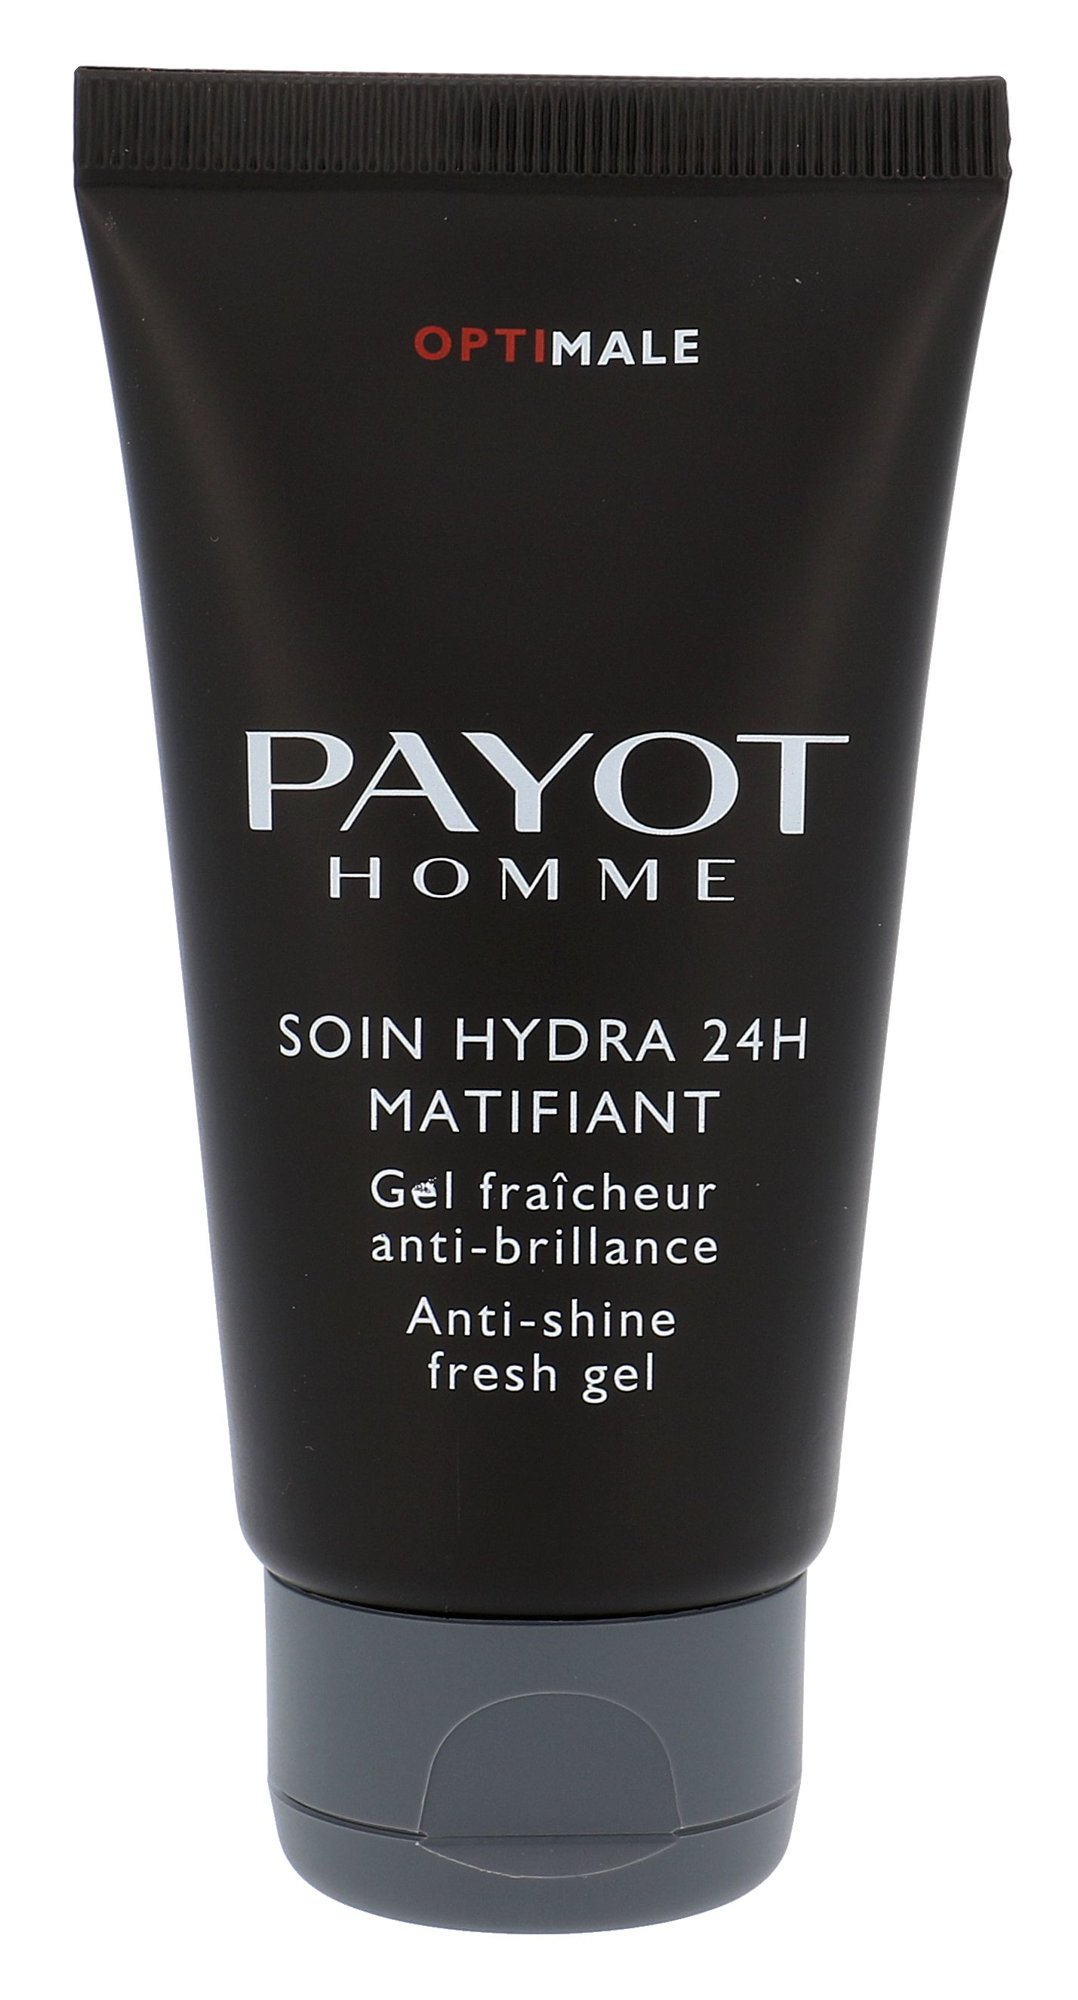 PAYOT Homme Optimale Cosmetic 50ml  Anti-Shine Fresh Gel